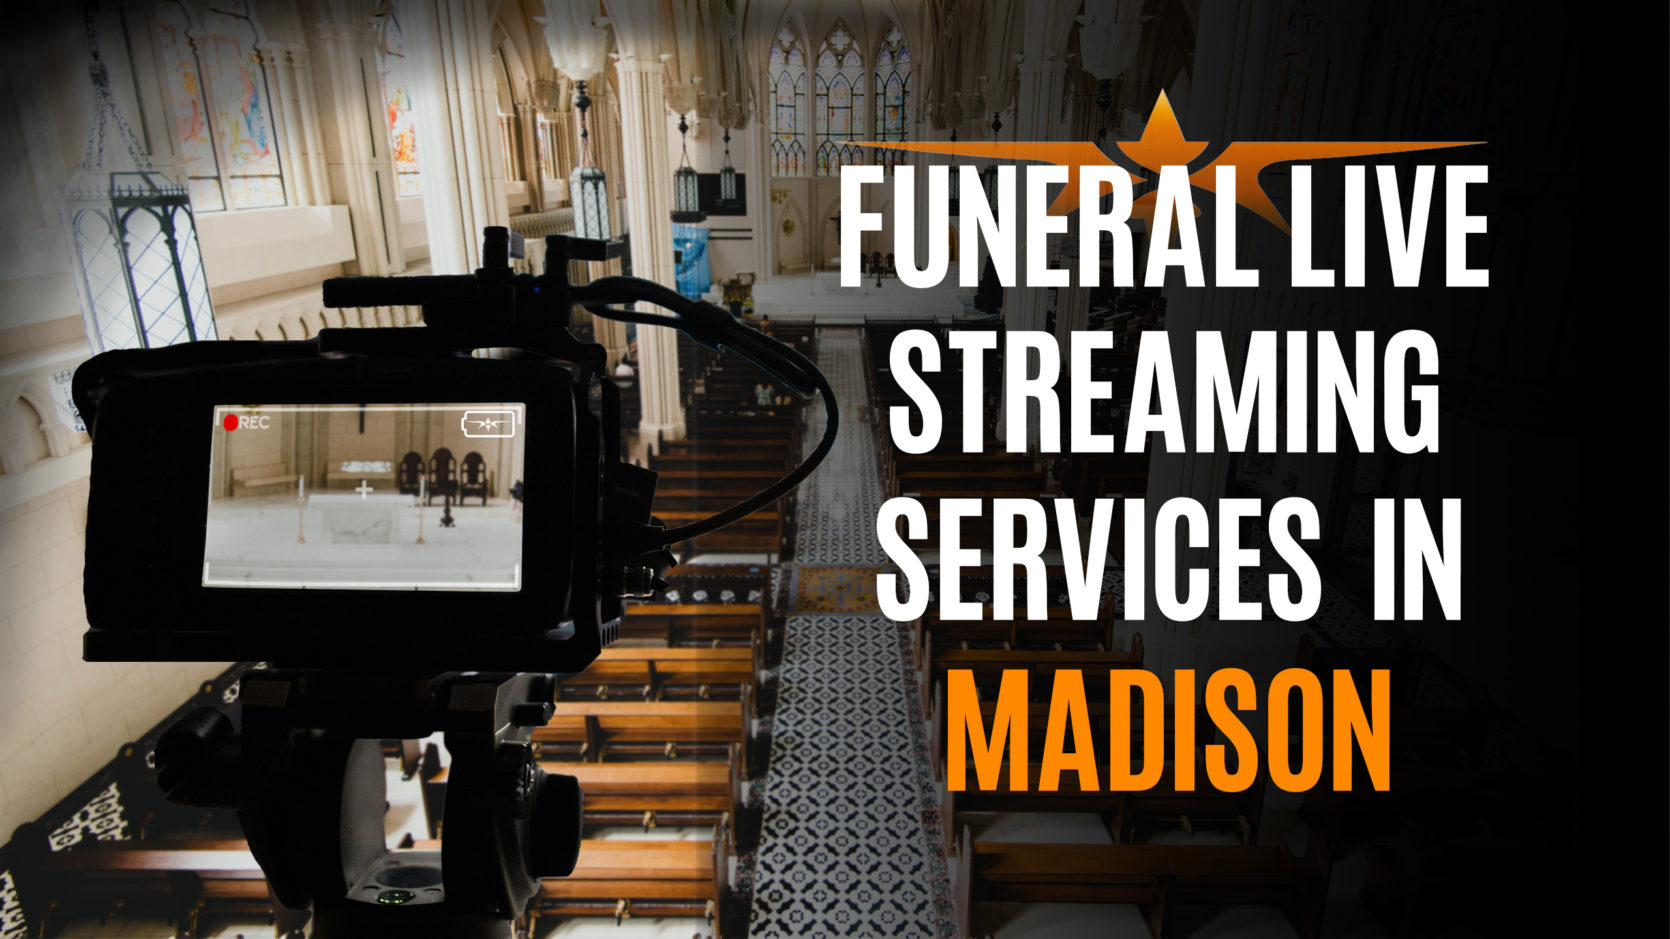 Funeral Live Streaming Services in Madison